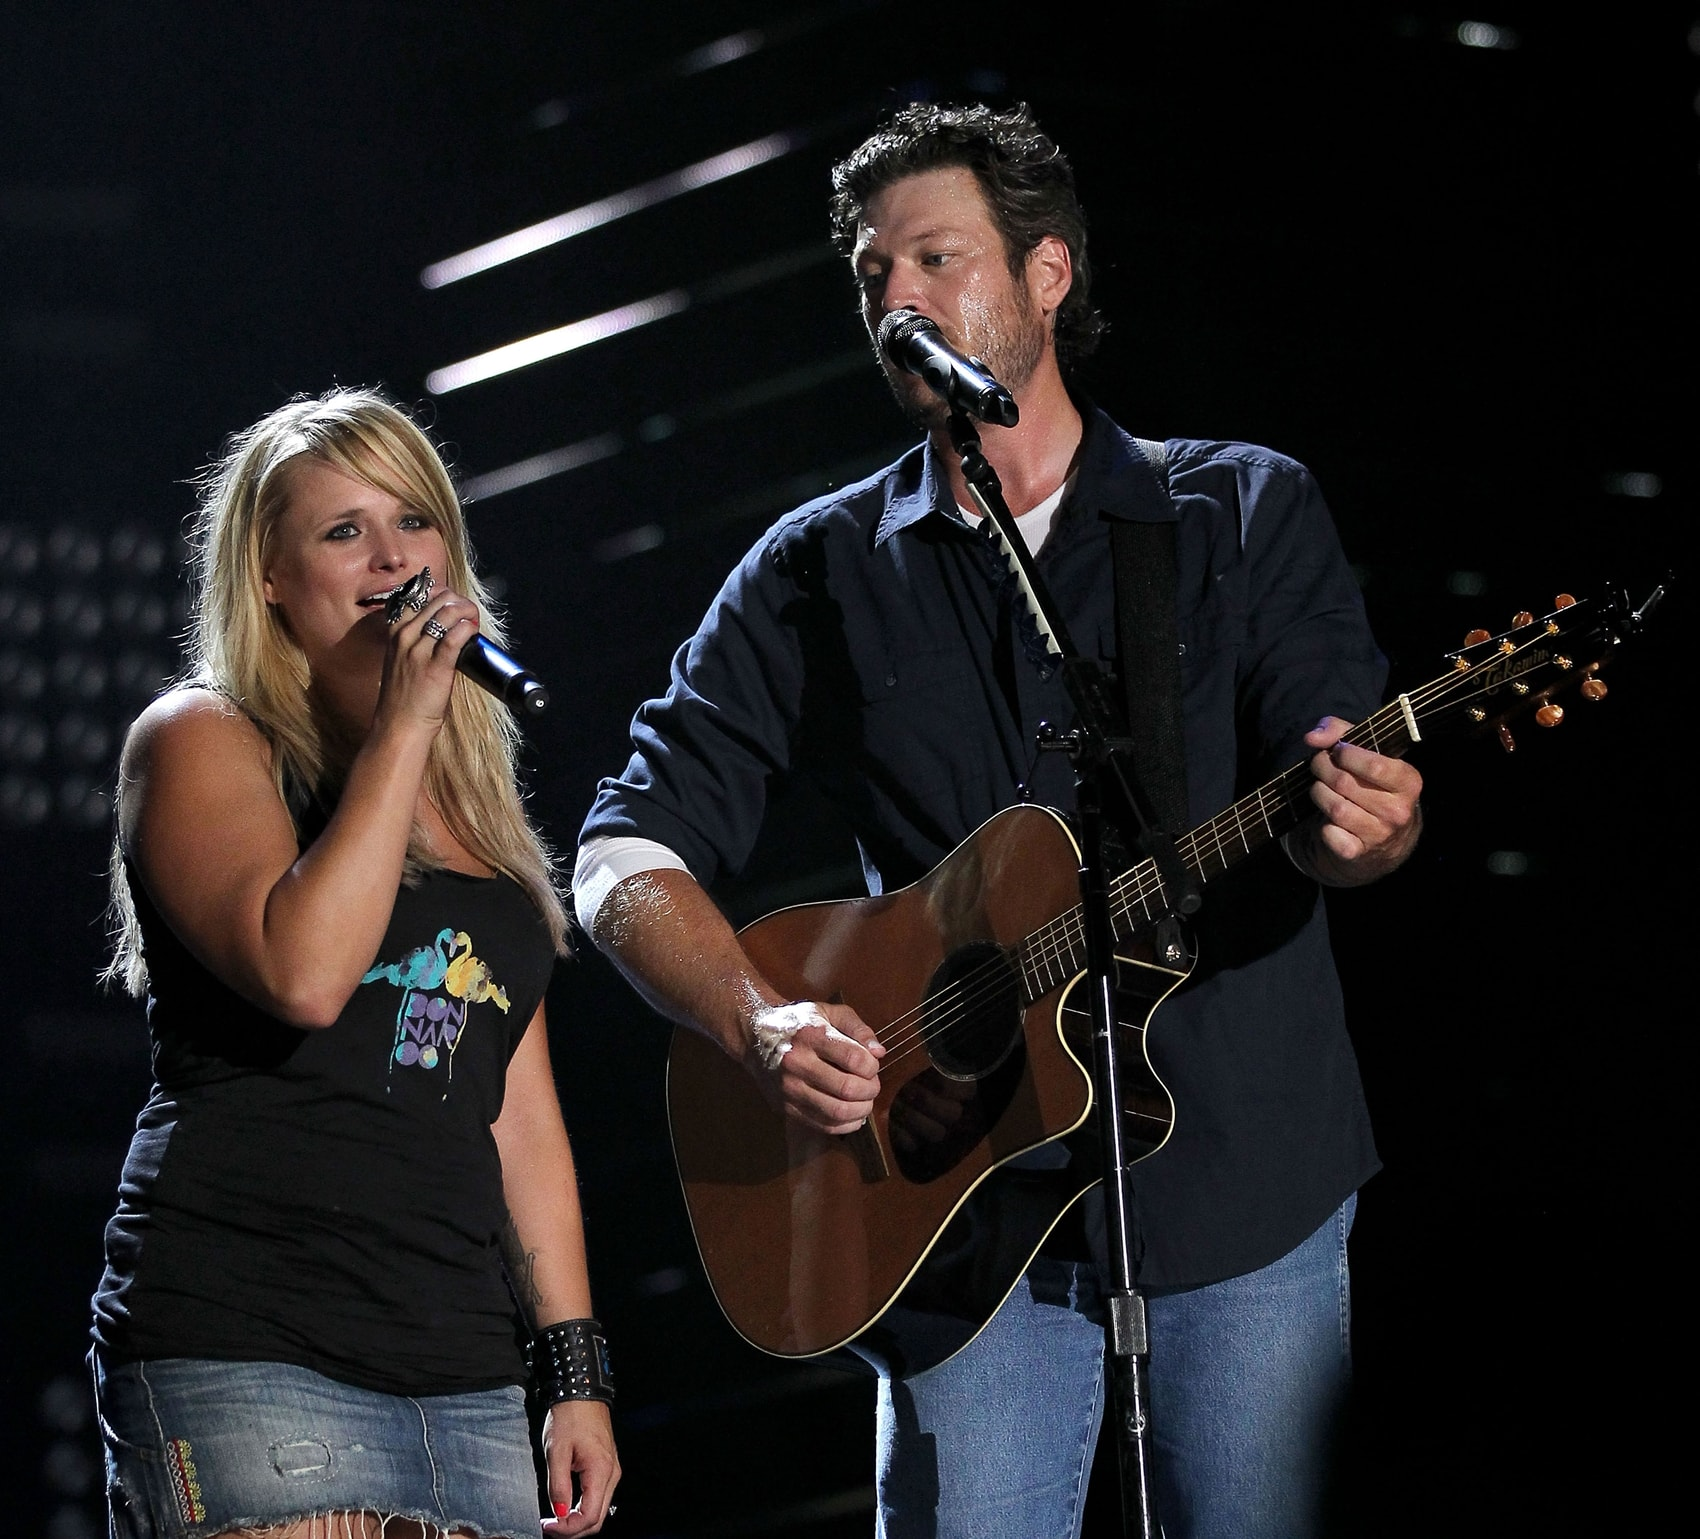 """Blake Shelton and Miranda Lambert perform his version of Canadian singer Michael Bublé's hit song""""Home"""" at the 2010 CMA Music Festival"""